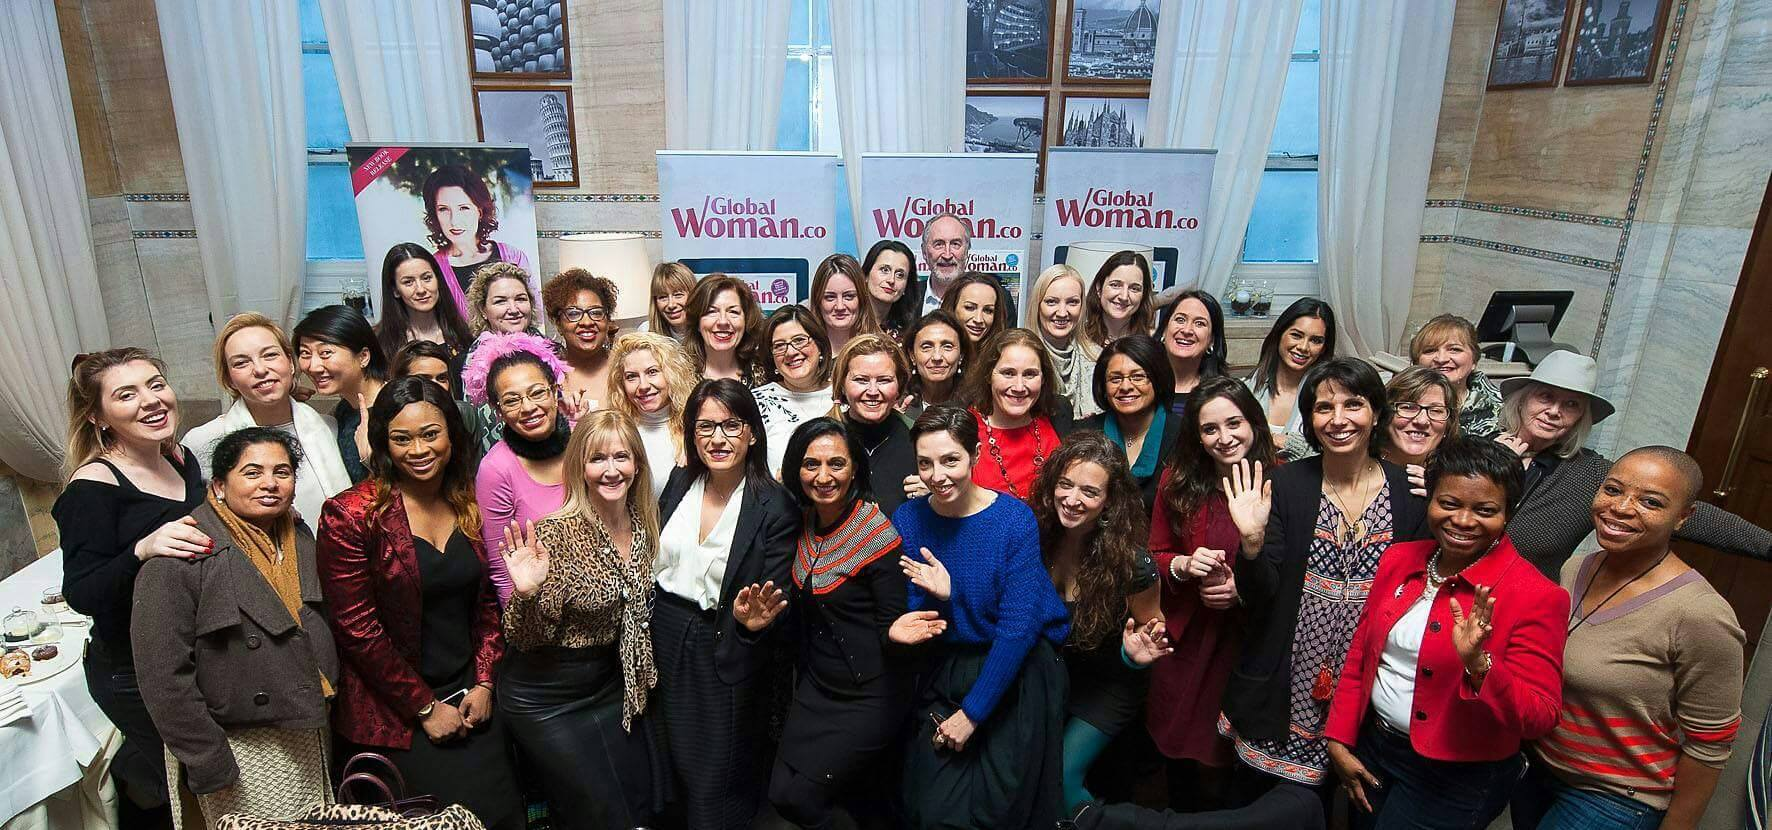 https://www.eventbrite.co.uk/e/business-breakfast-event-global-woman-club-london-tickets-35400215999